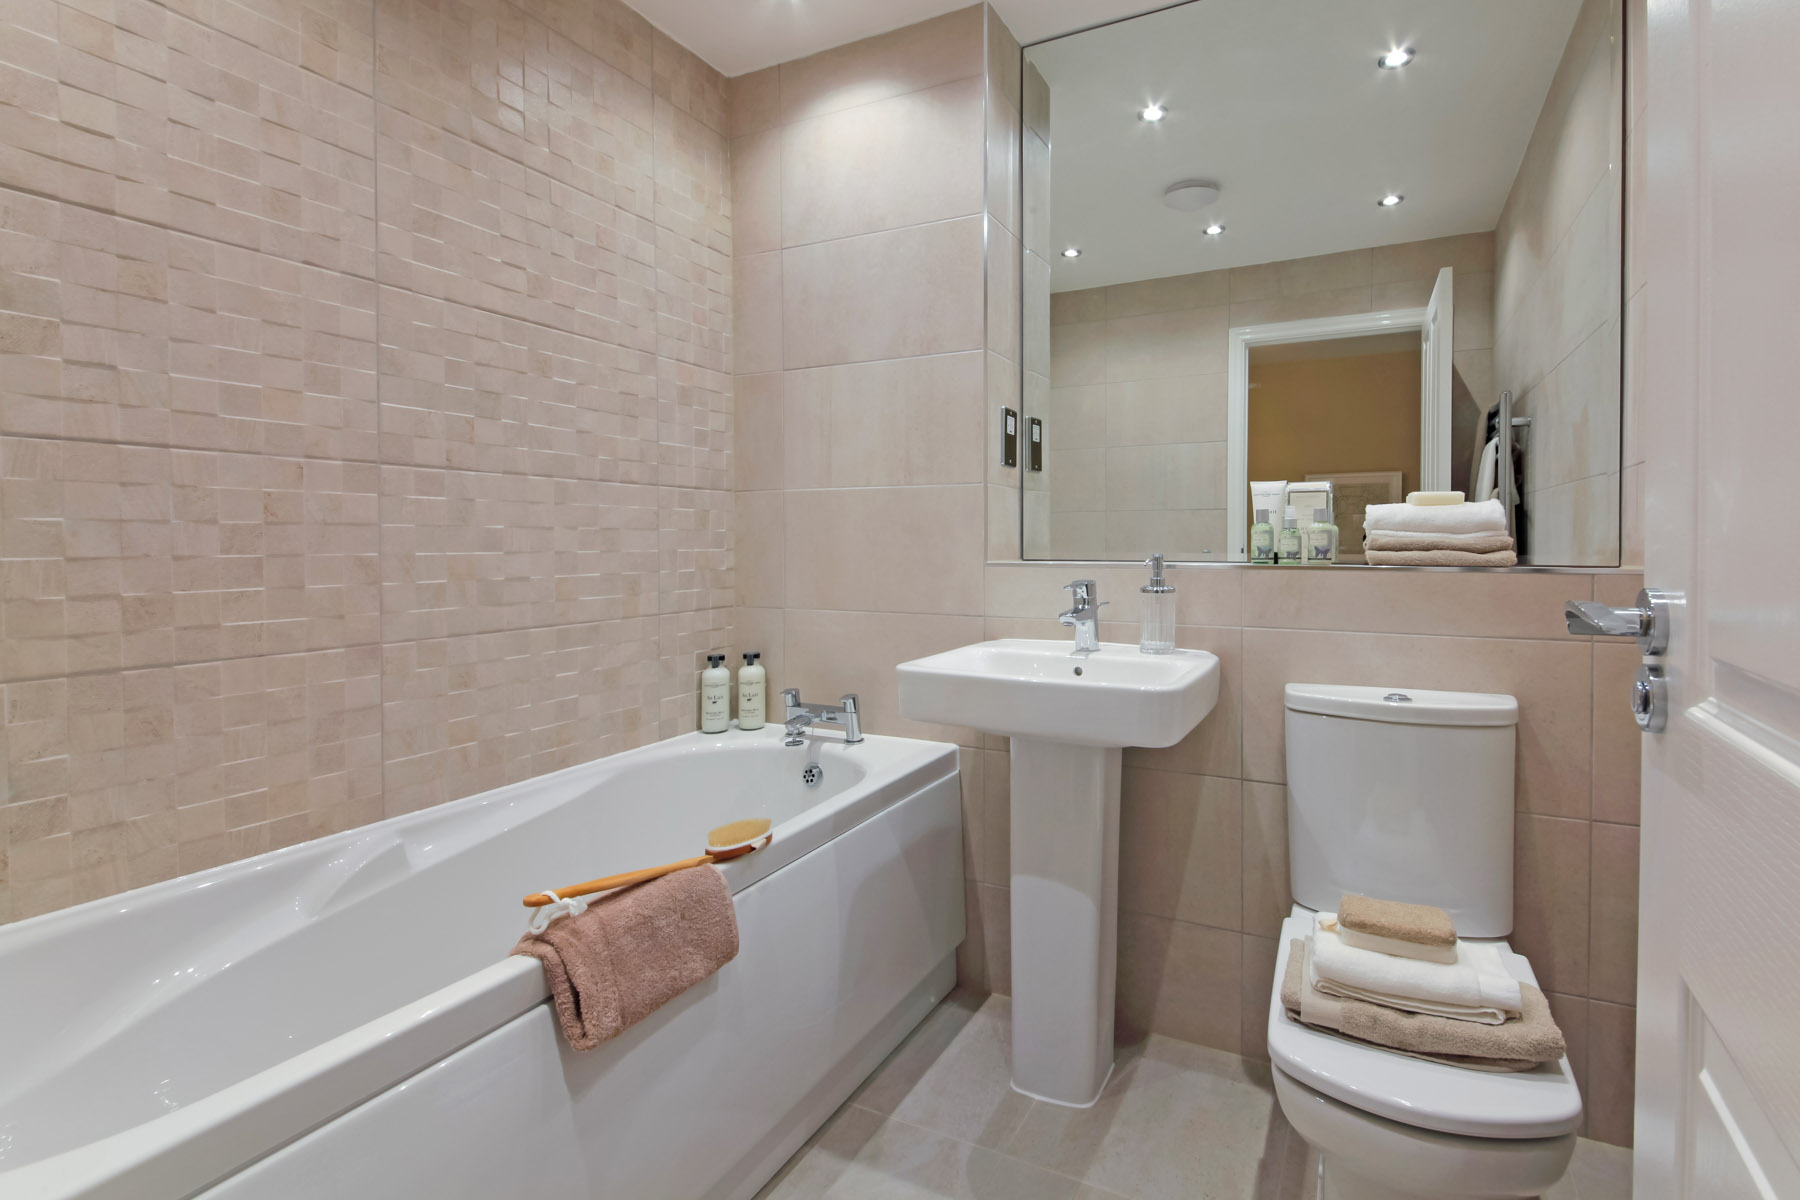 The heath at hampton wood stockport taylor wimpey for Bathroom designs manchester